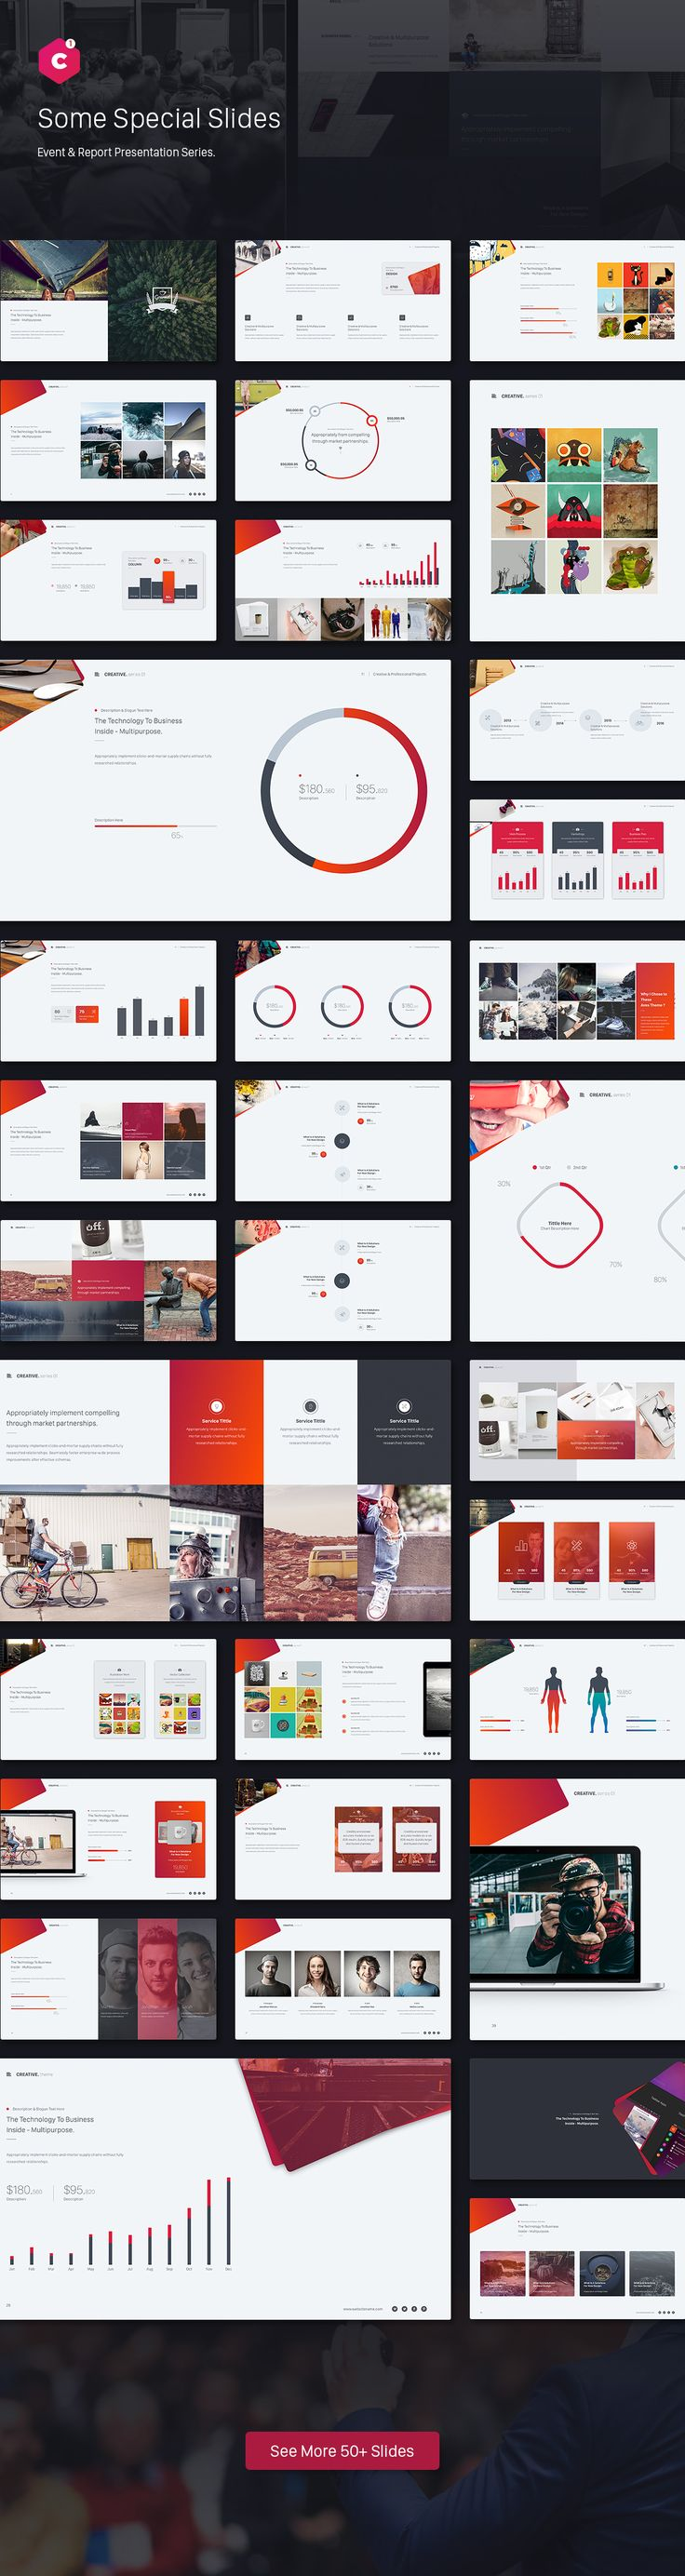 Event & Report Presentation Series 01: Creative   Get a modern Presentation that is beautifully designed and functional. This slides comes with infographic elements, charts graphs and icons...